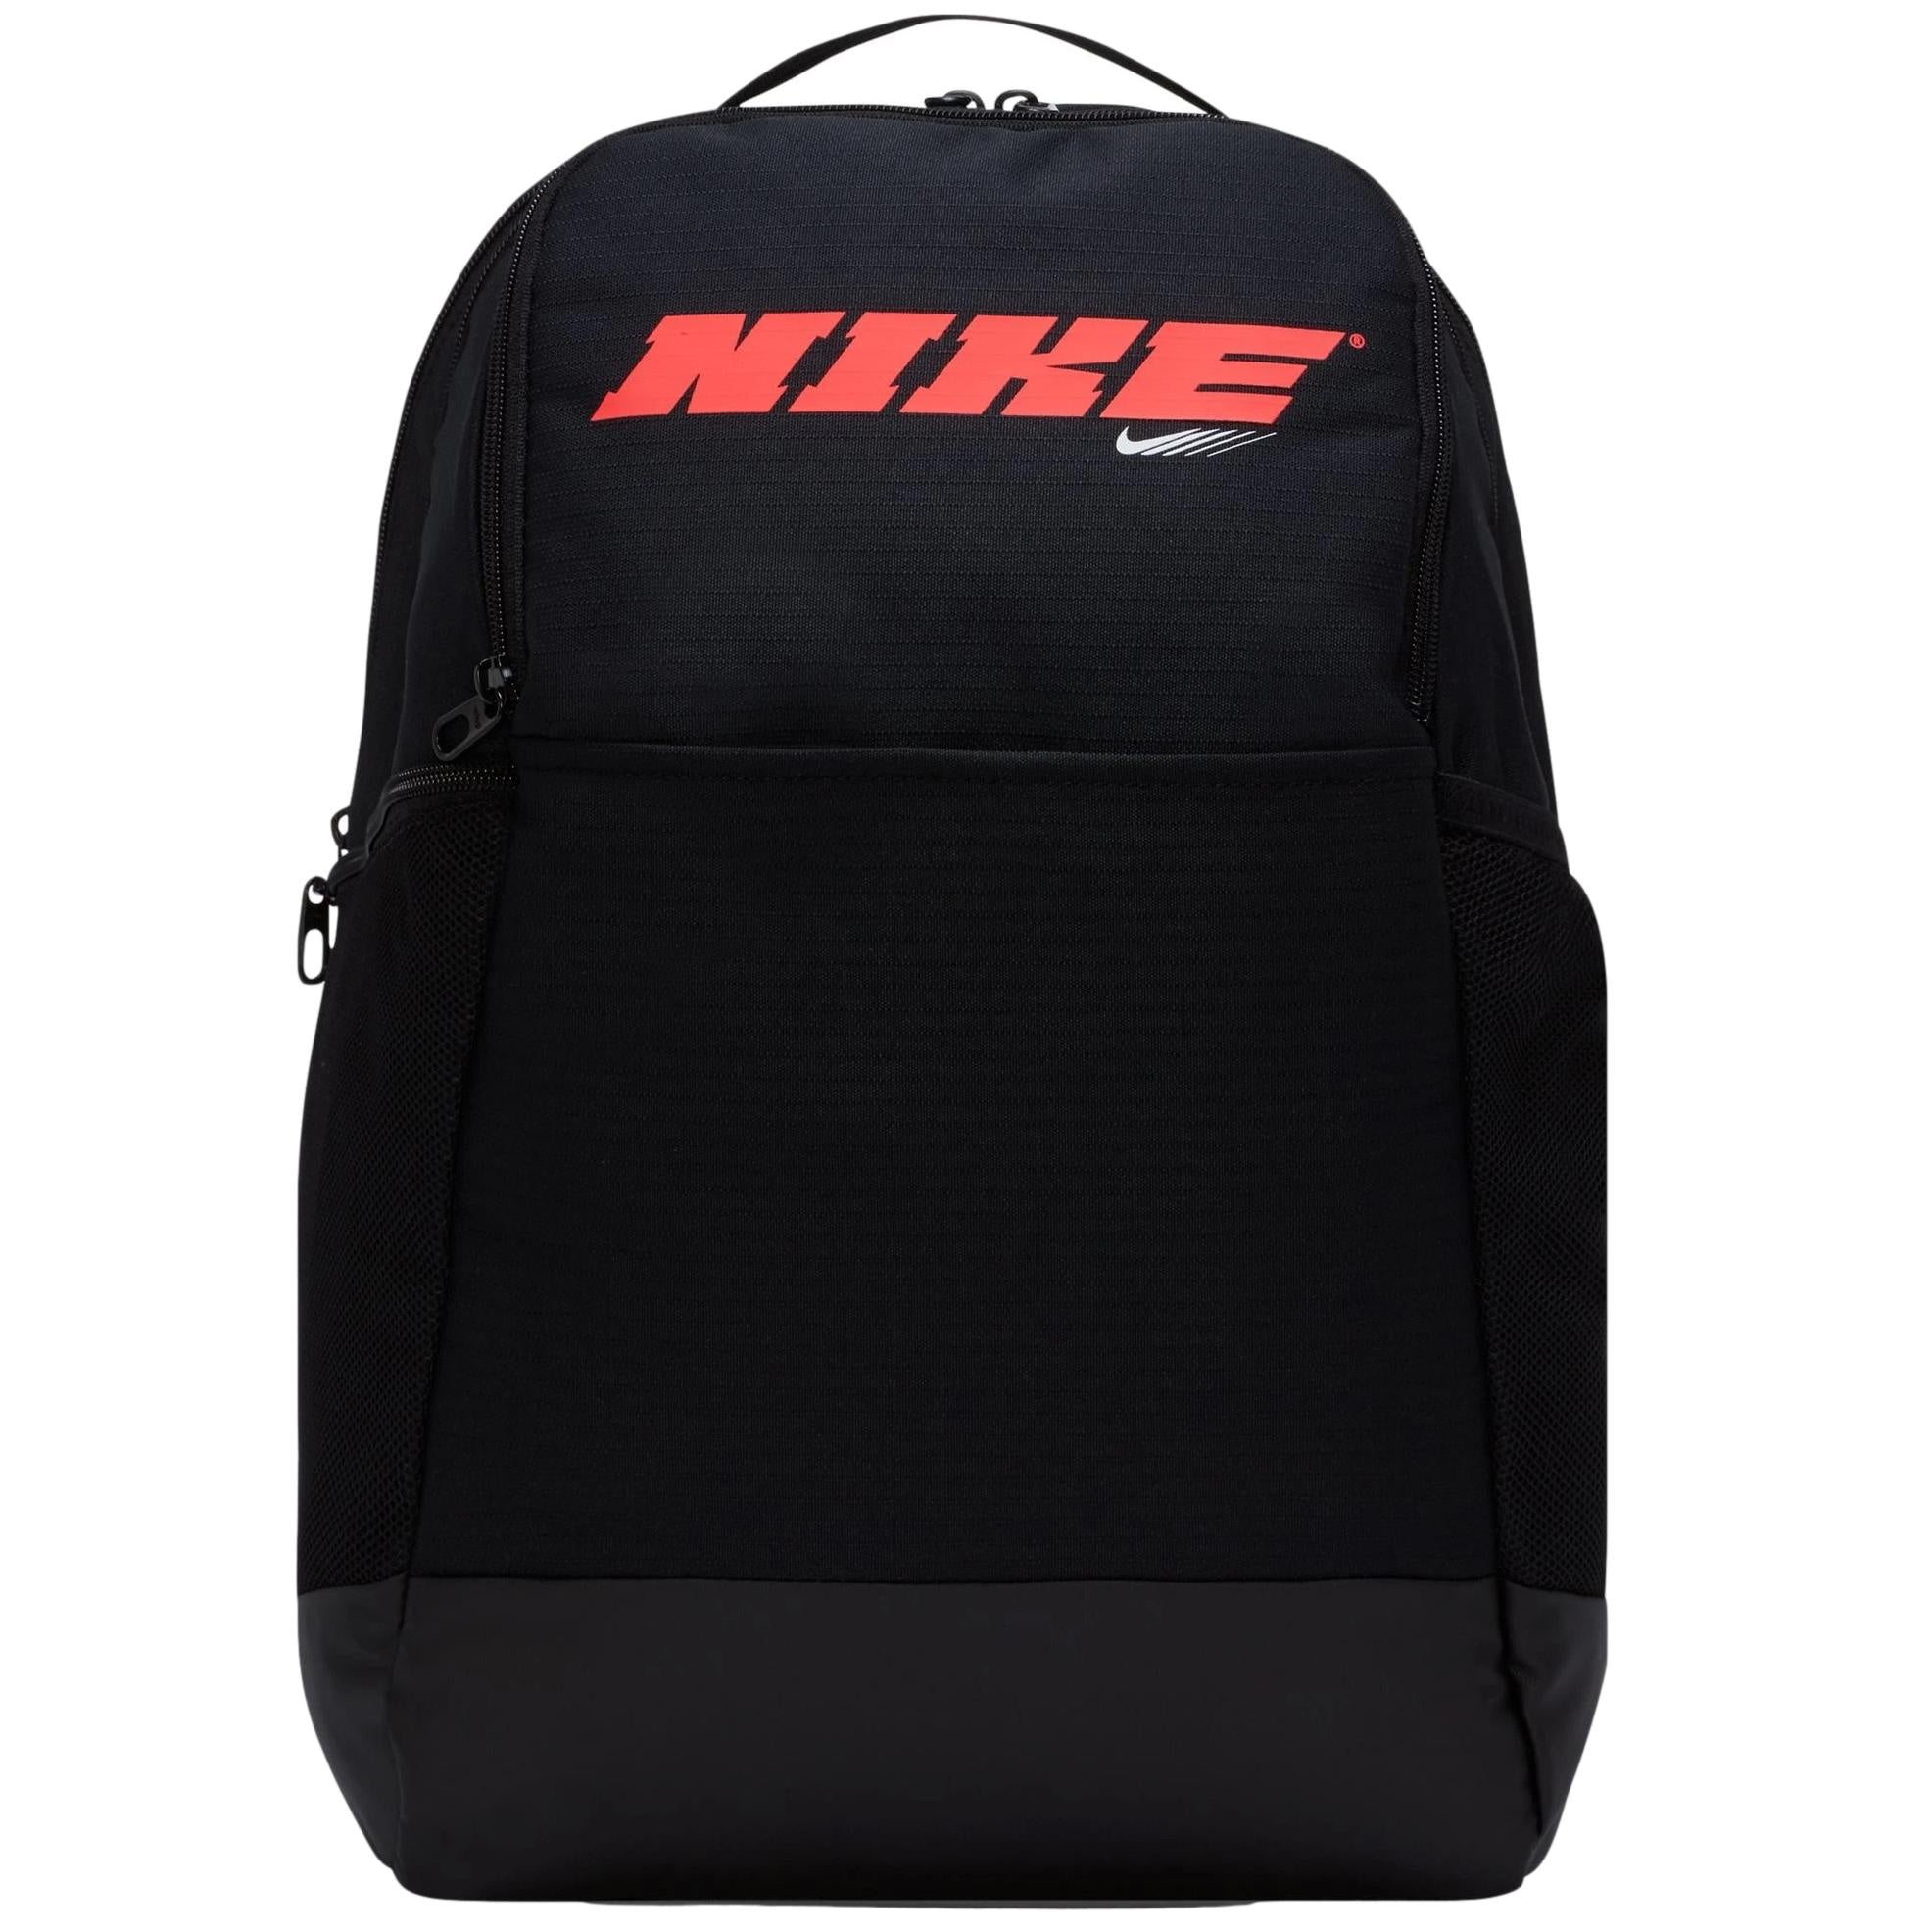 Nike Brasilia Backpack Black / Bright Crimson 9.0 PX